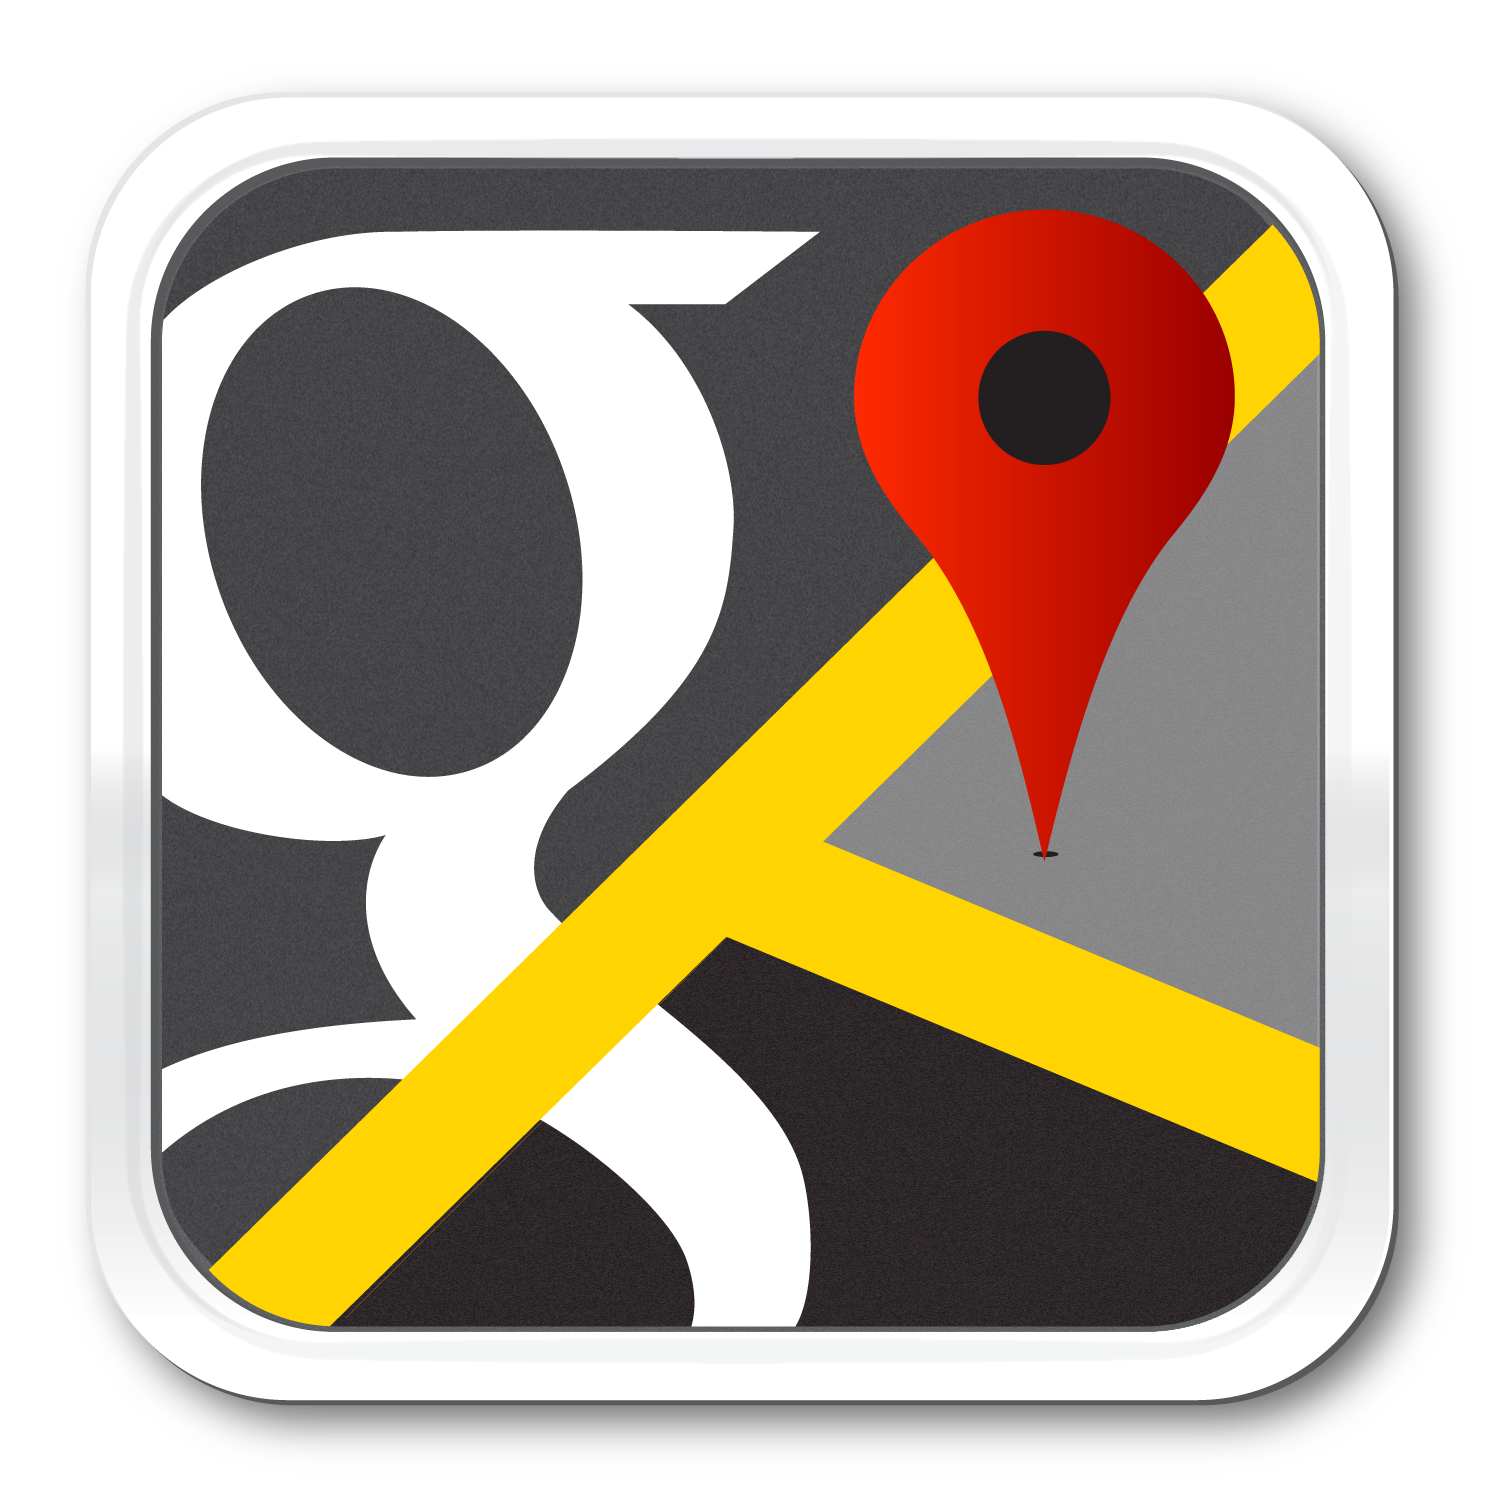 Passive-GPS-icons-05.png